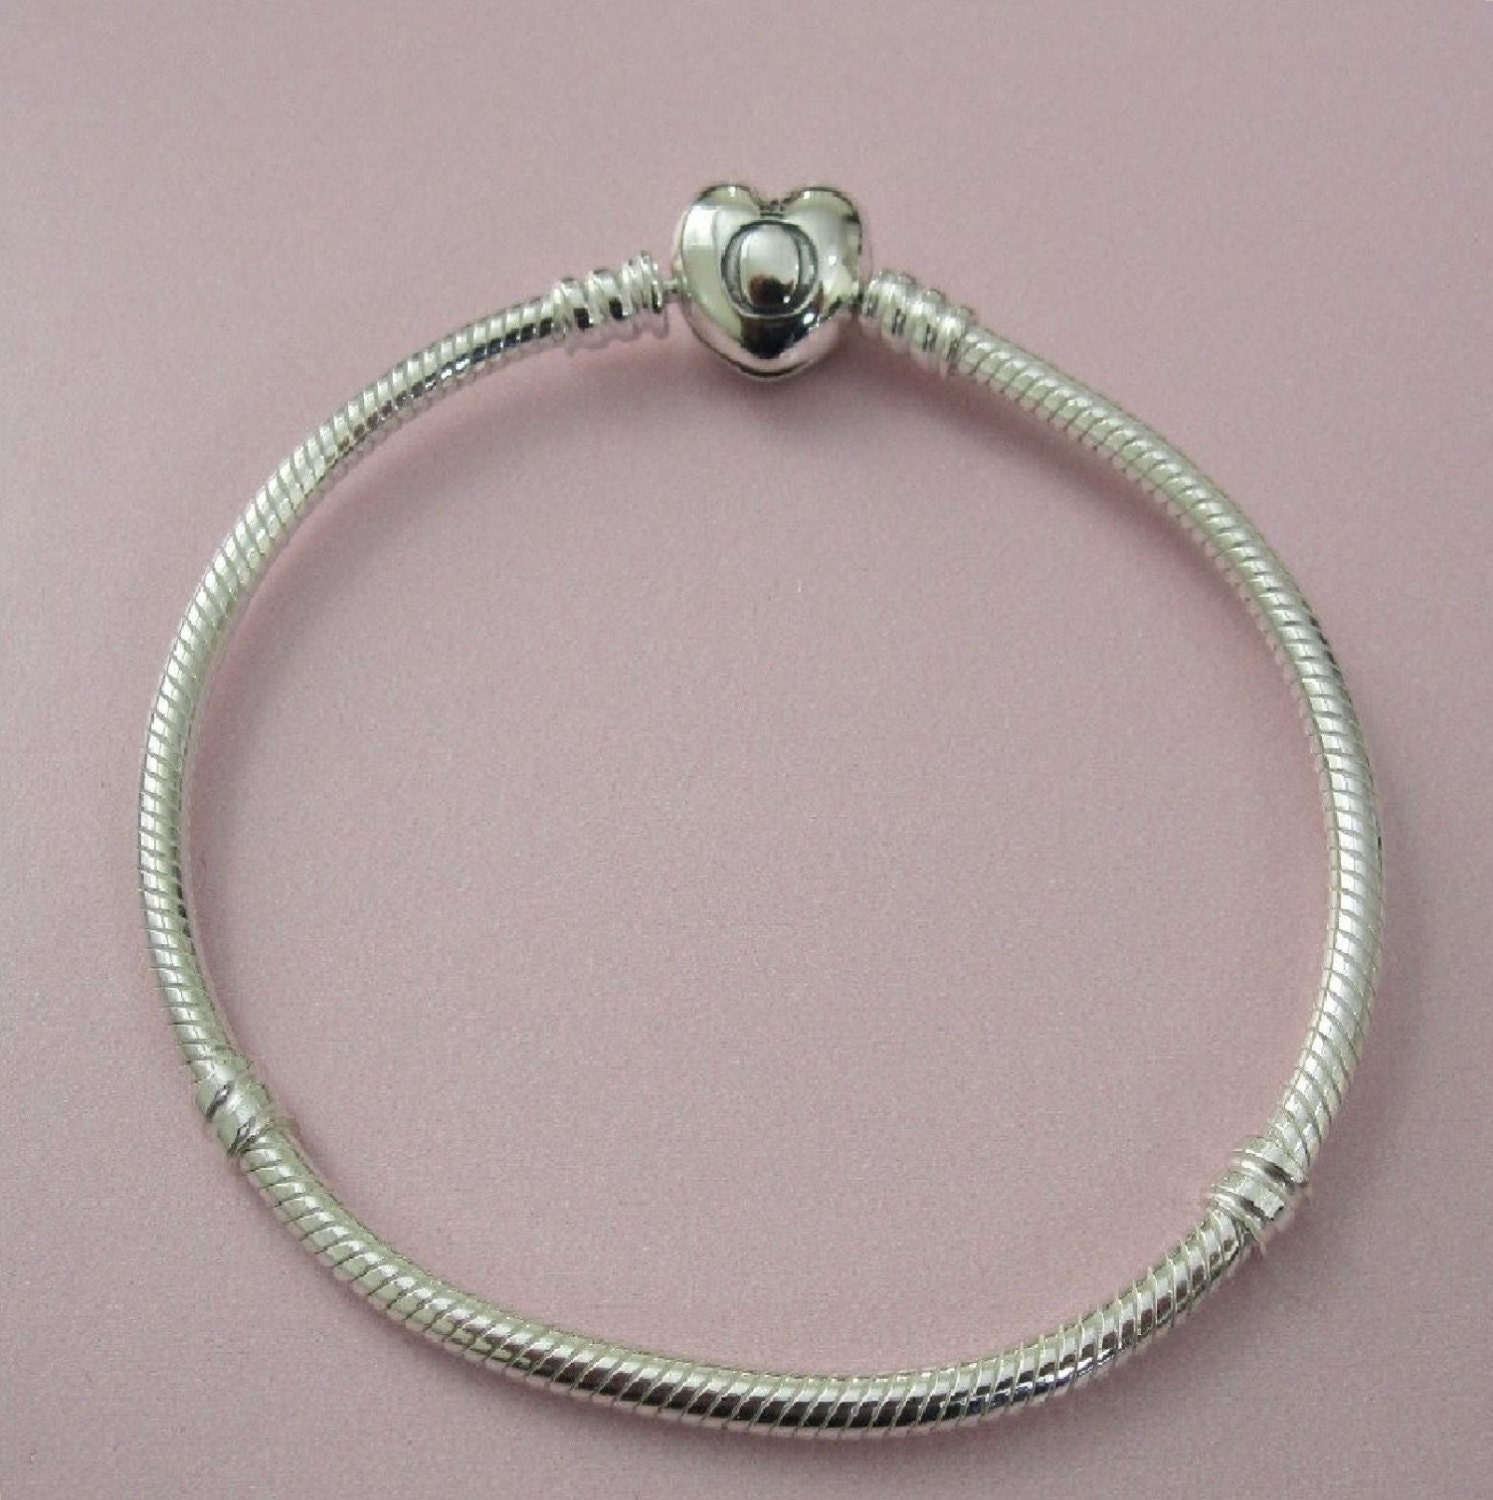 new genuine authentic pandora s day bracelet by